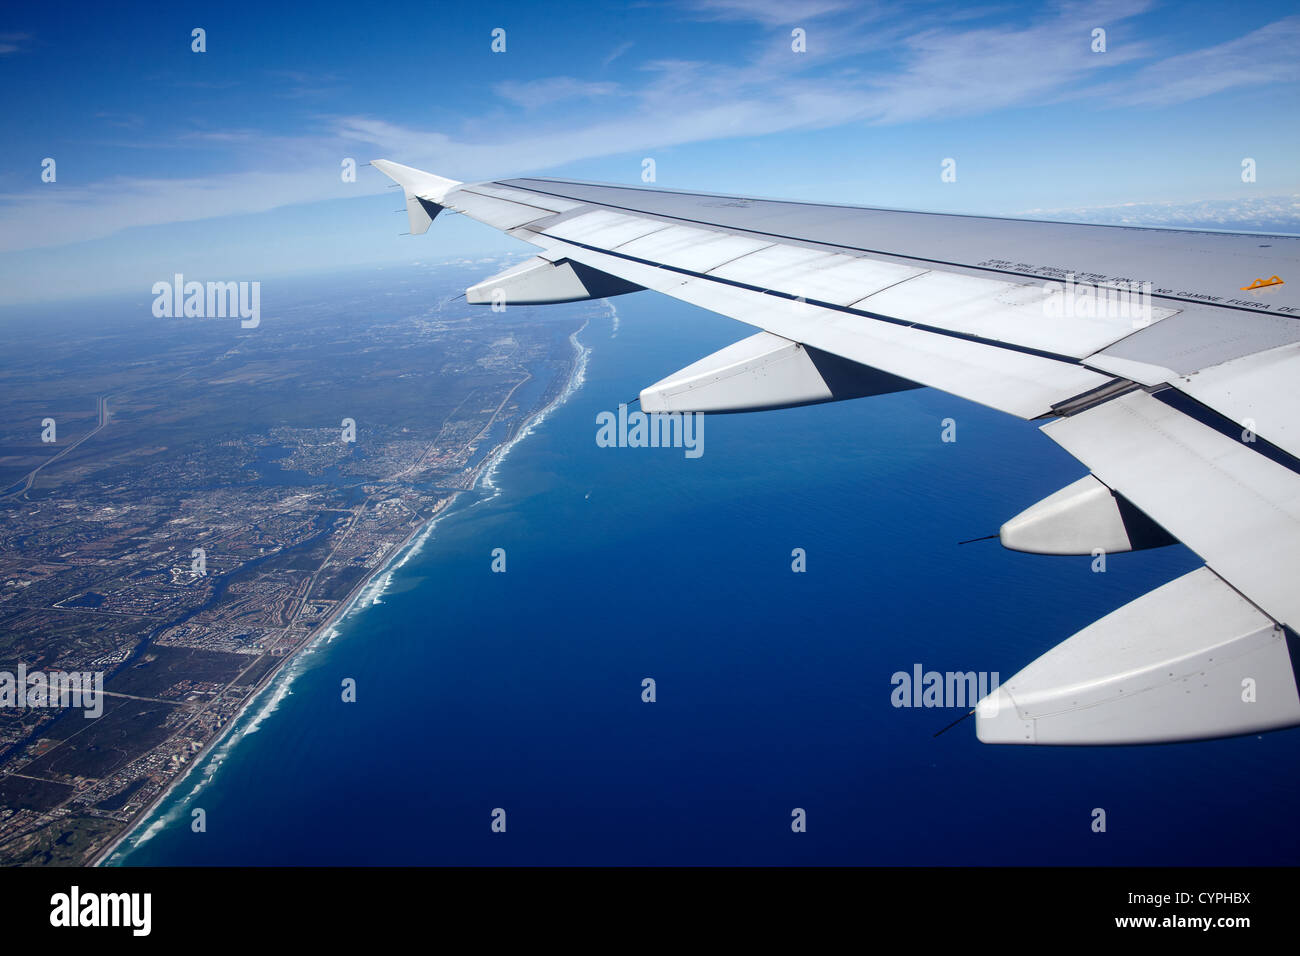 Airplane wing - Stock Image